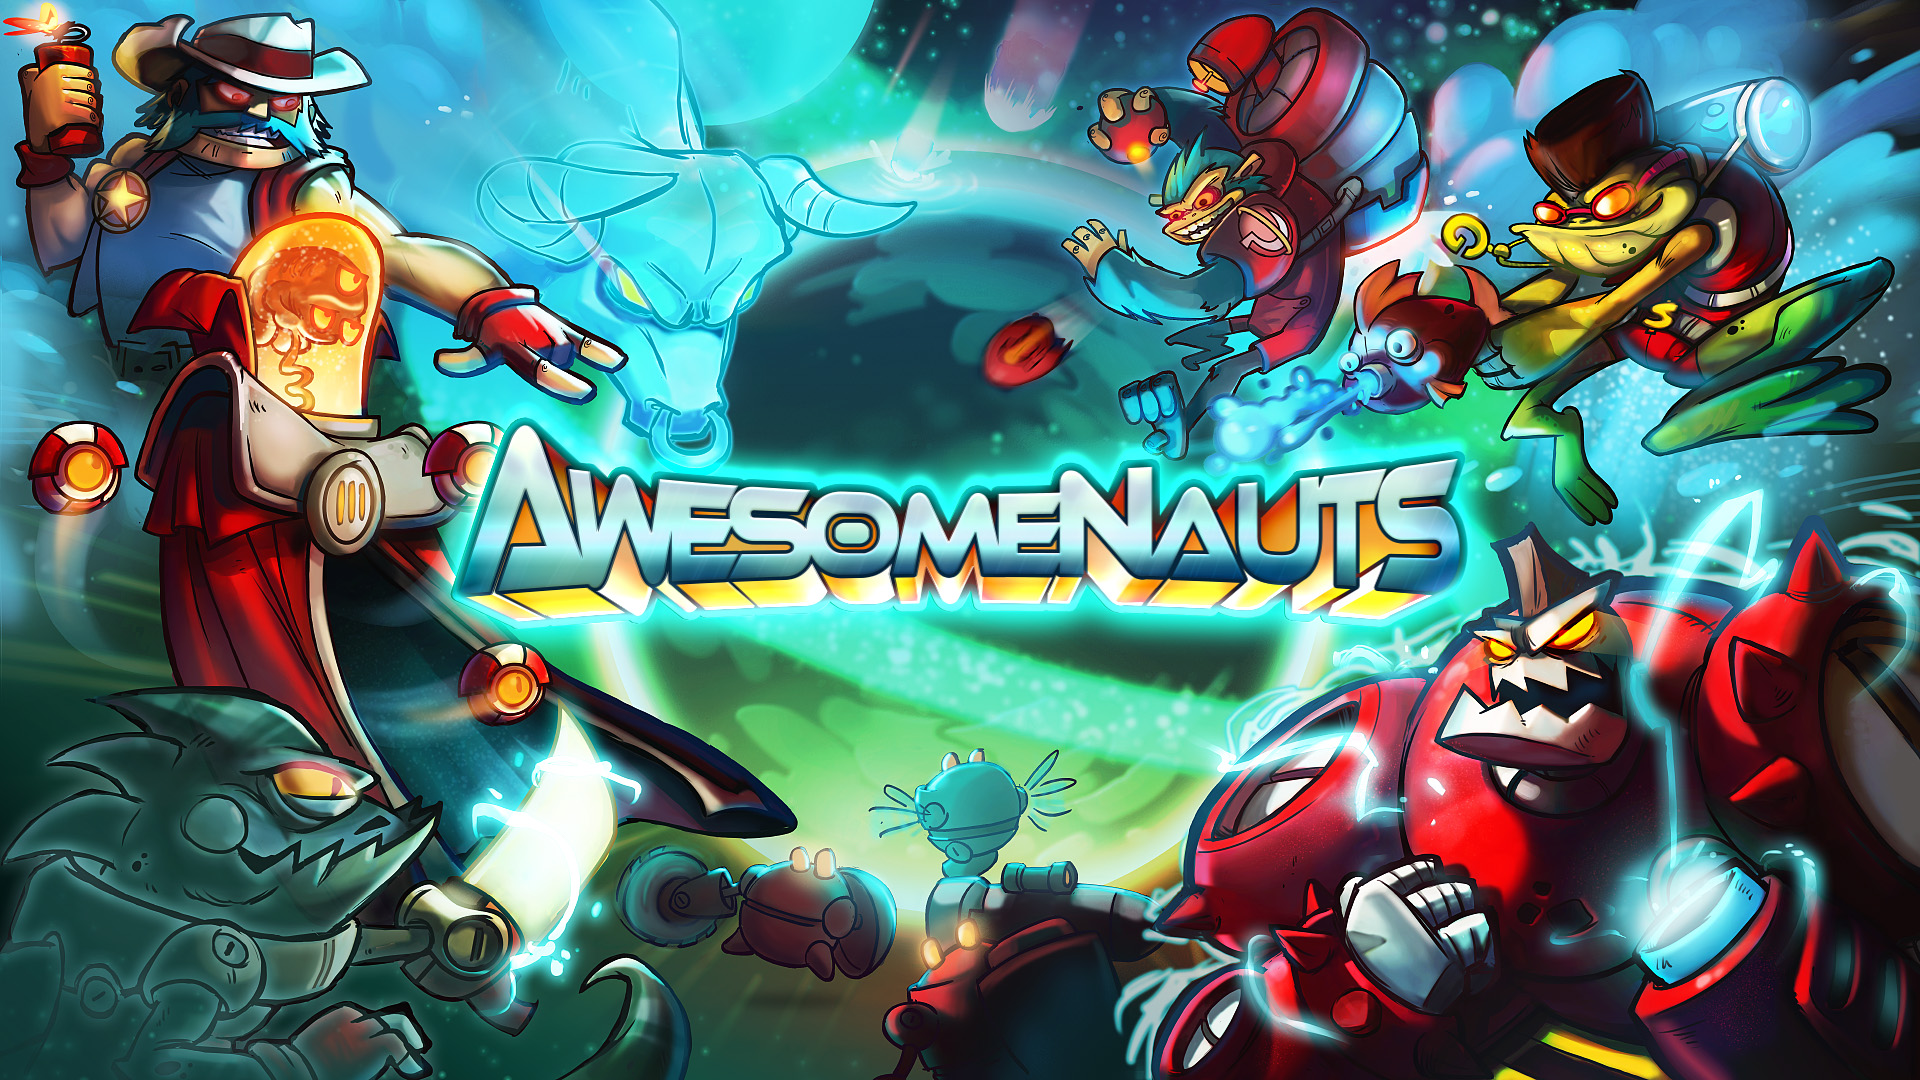 Awesomenauts Gets a Release Date for PC